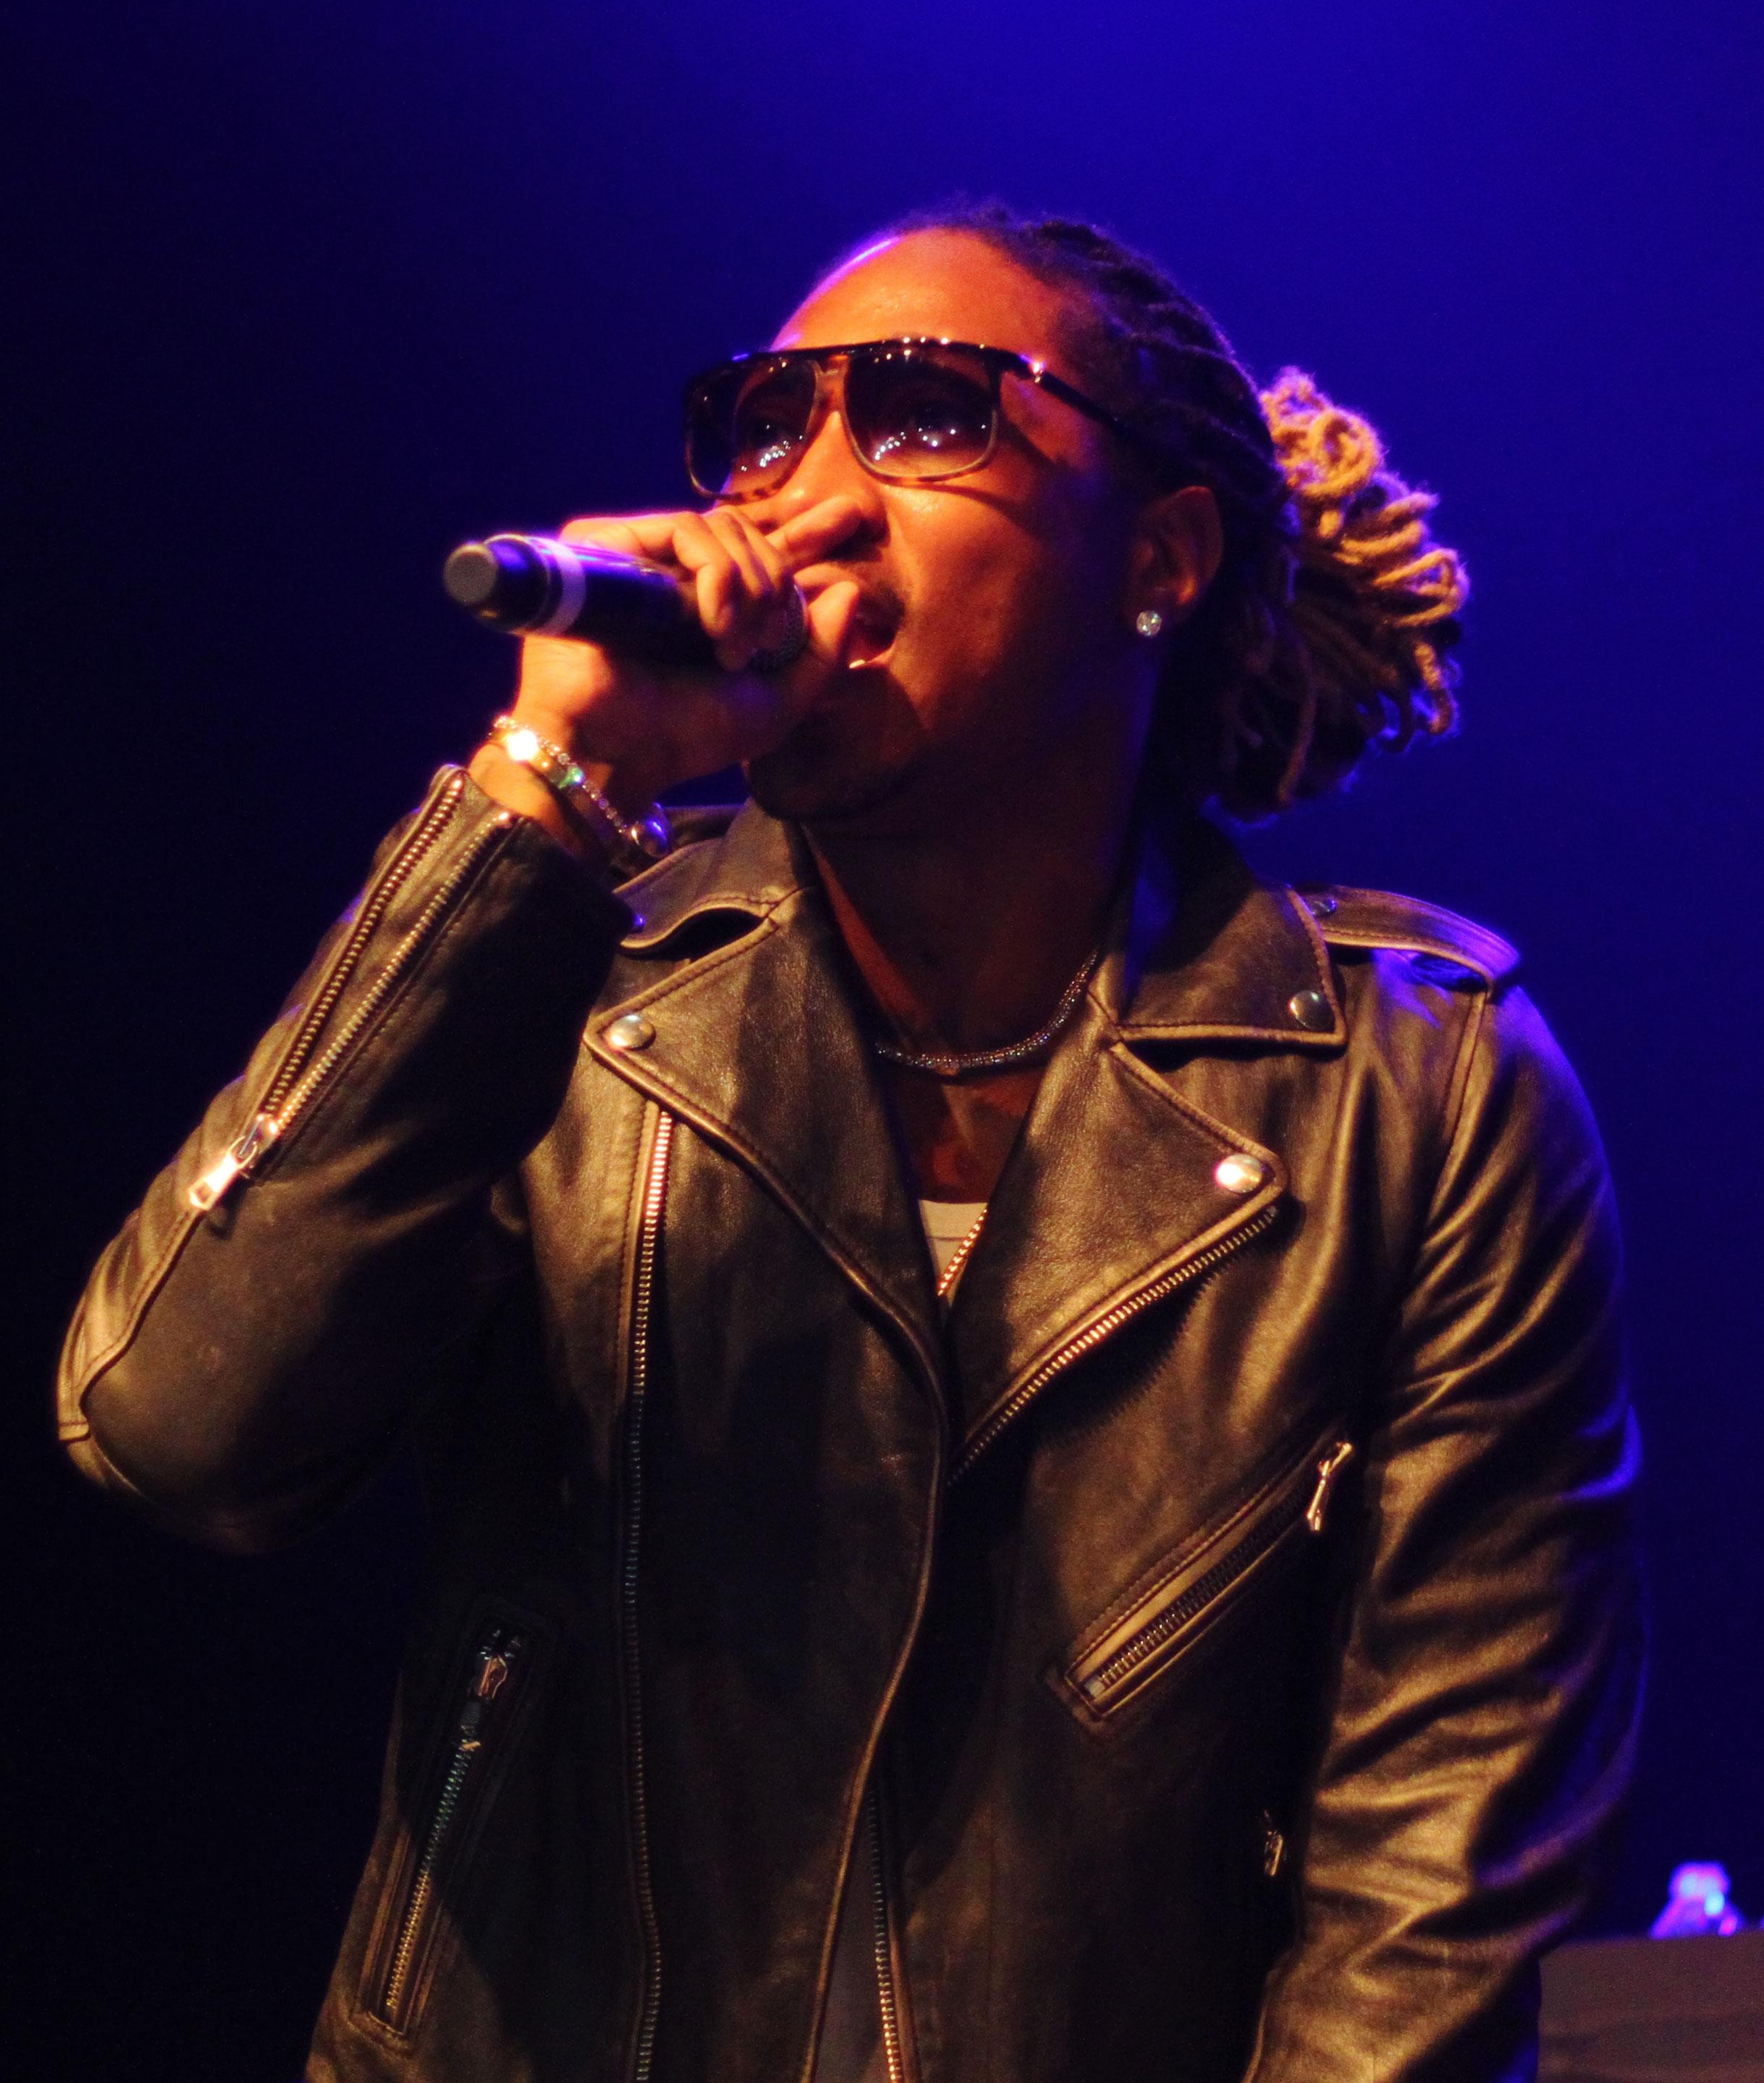 Future (rapper) - Wikipedia